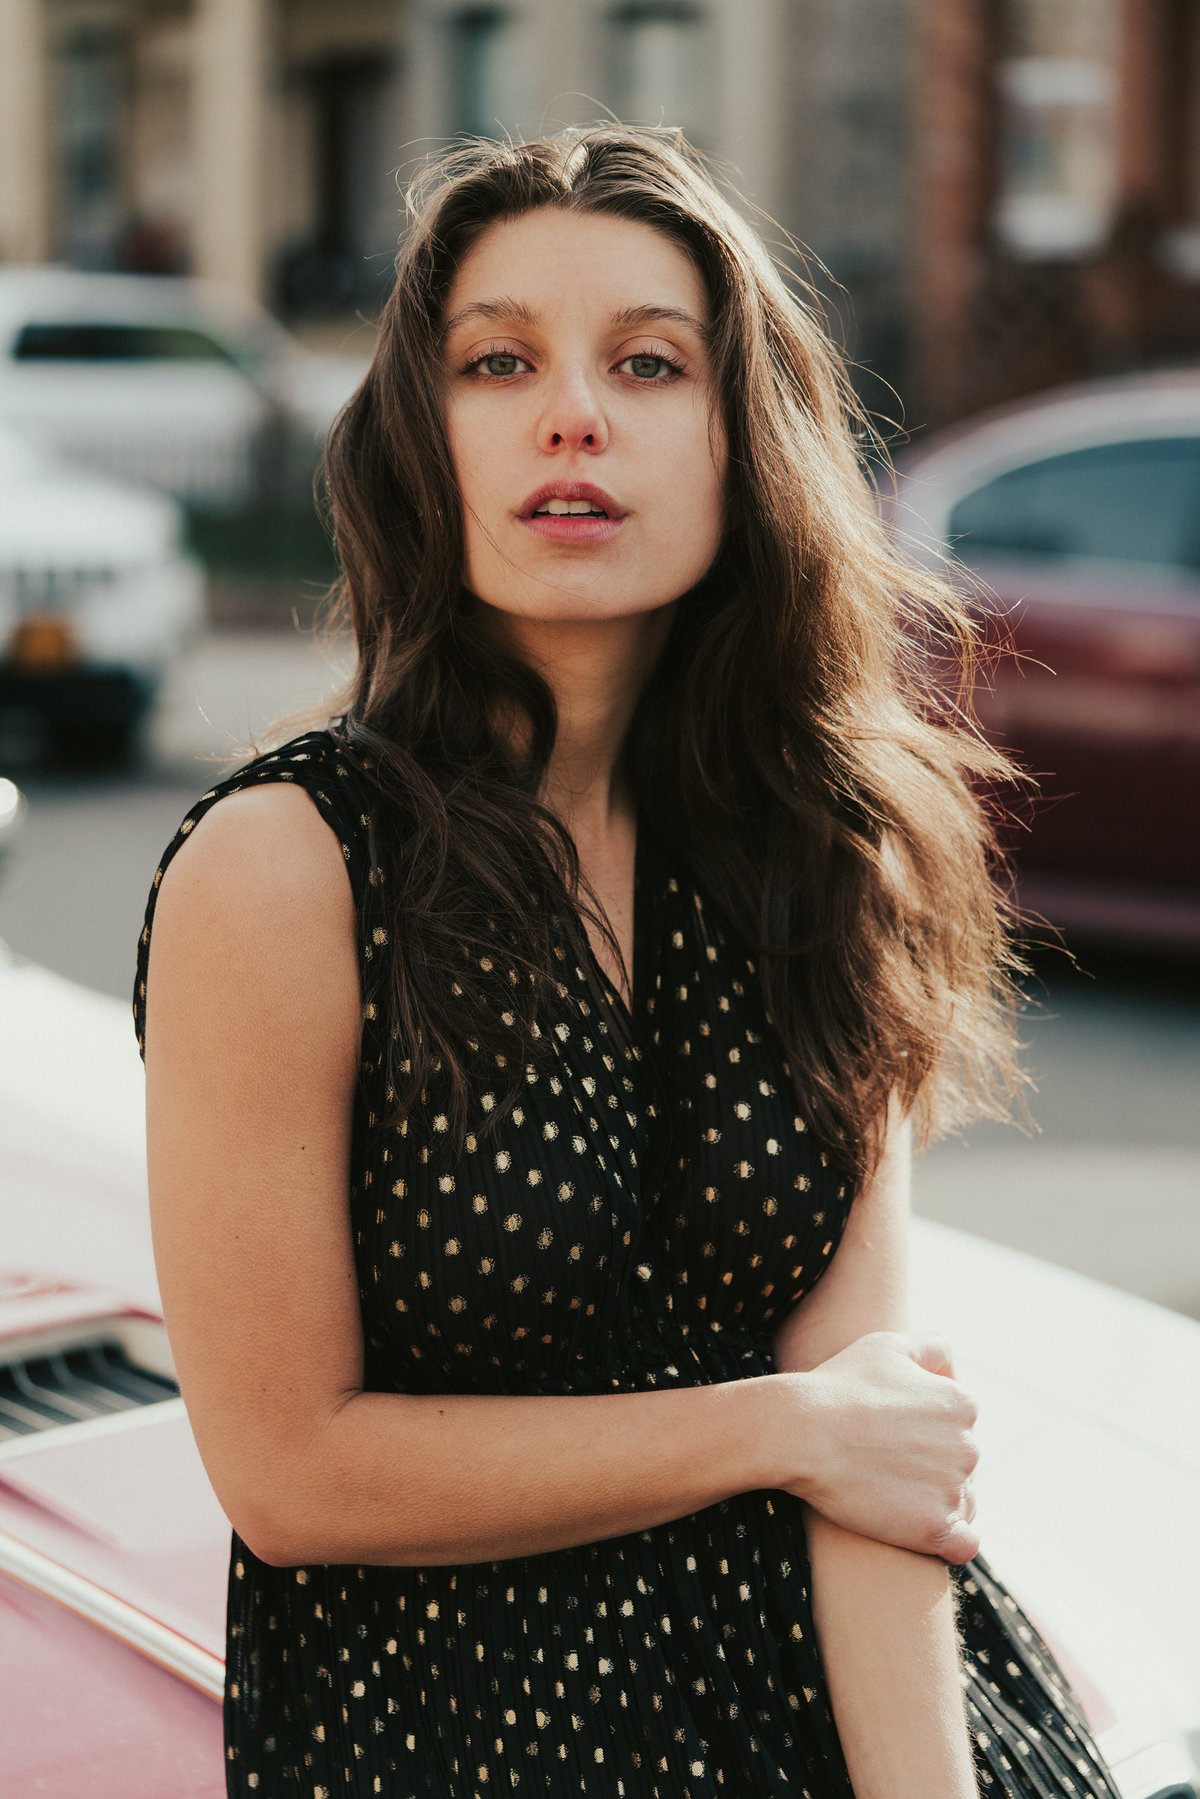 PORTRAIT OF A GIRL IN BROOKLYN WITH AN OLD CAR